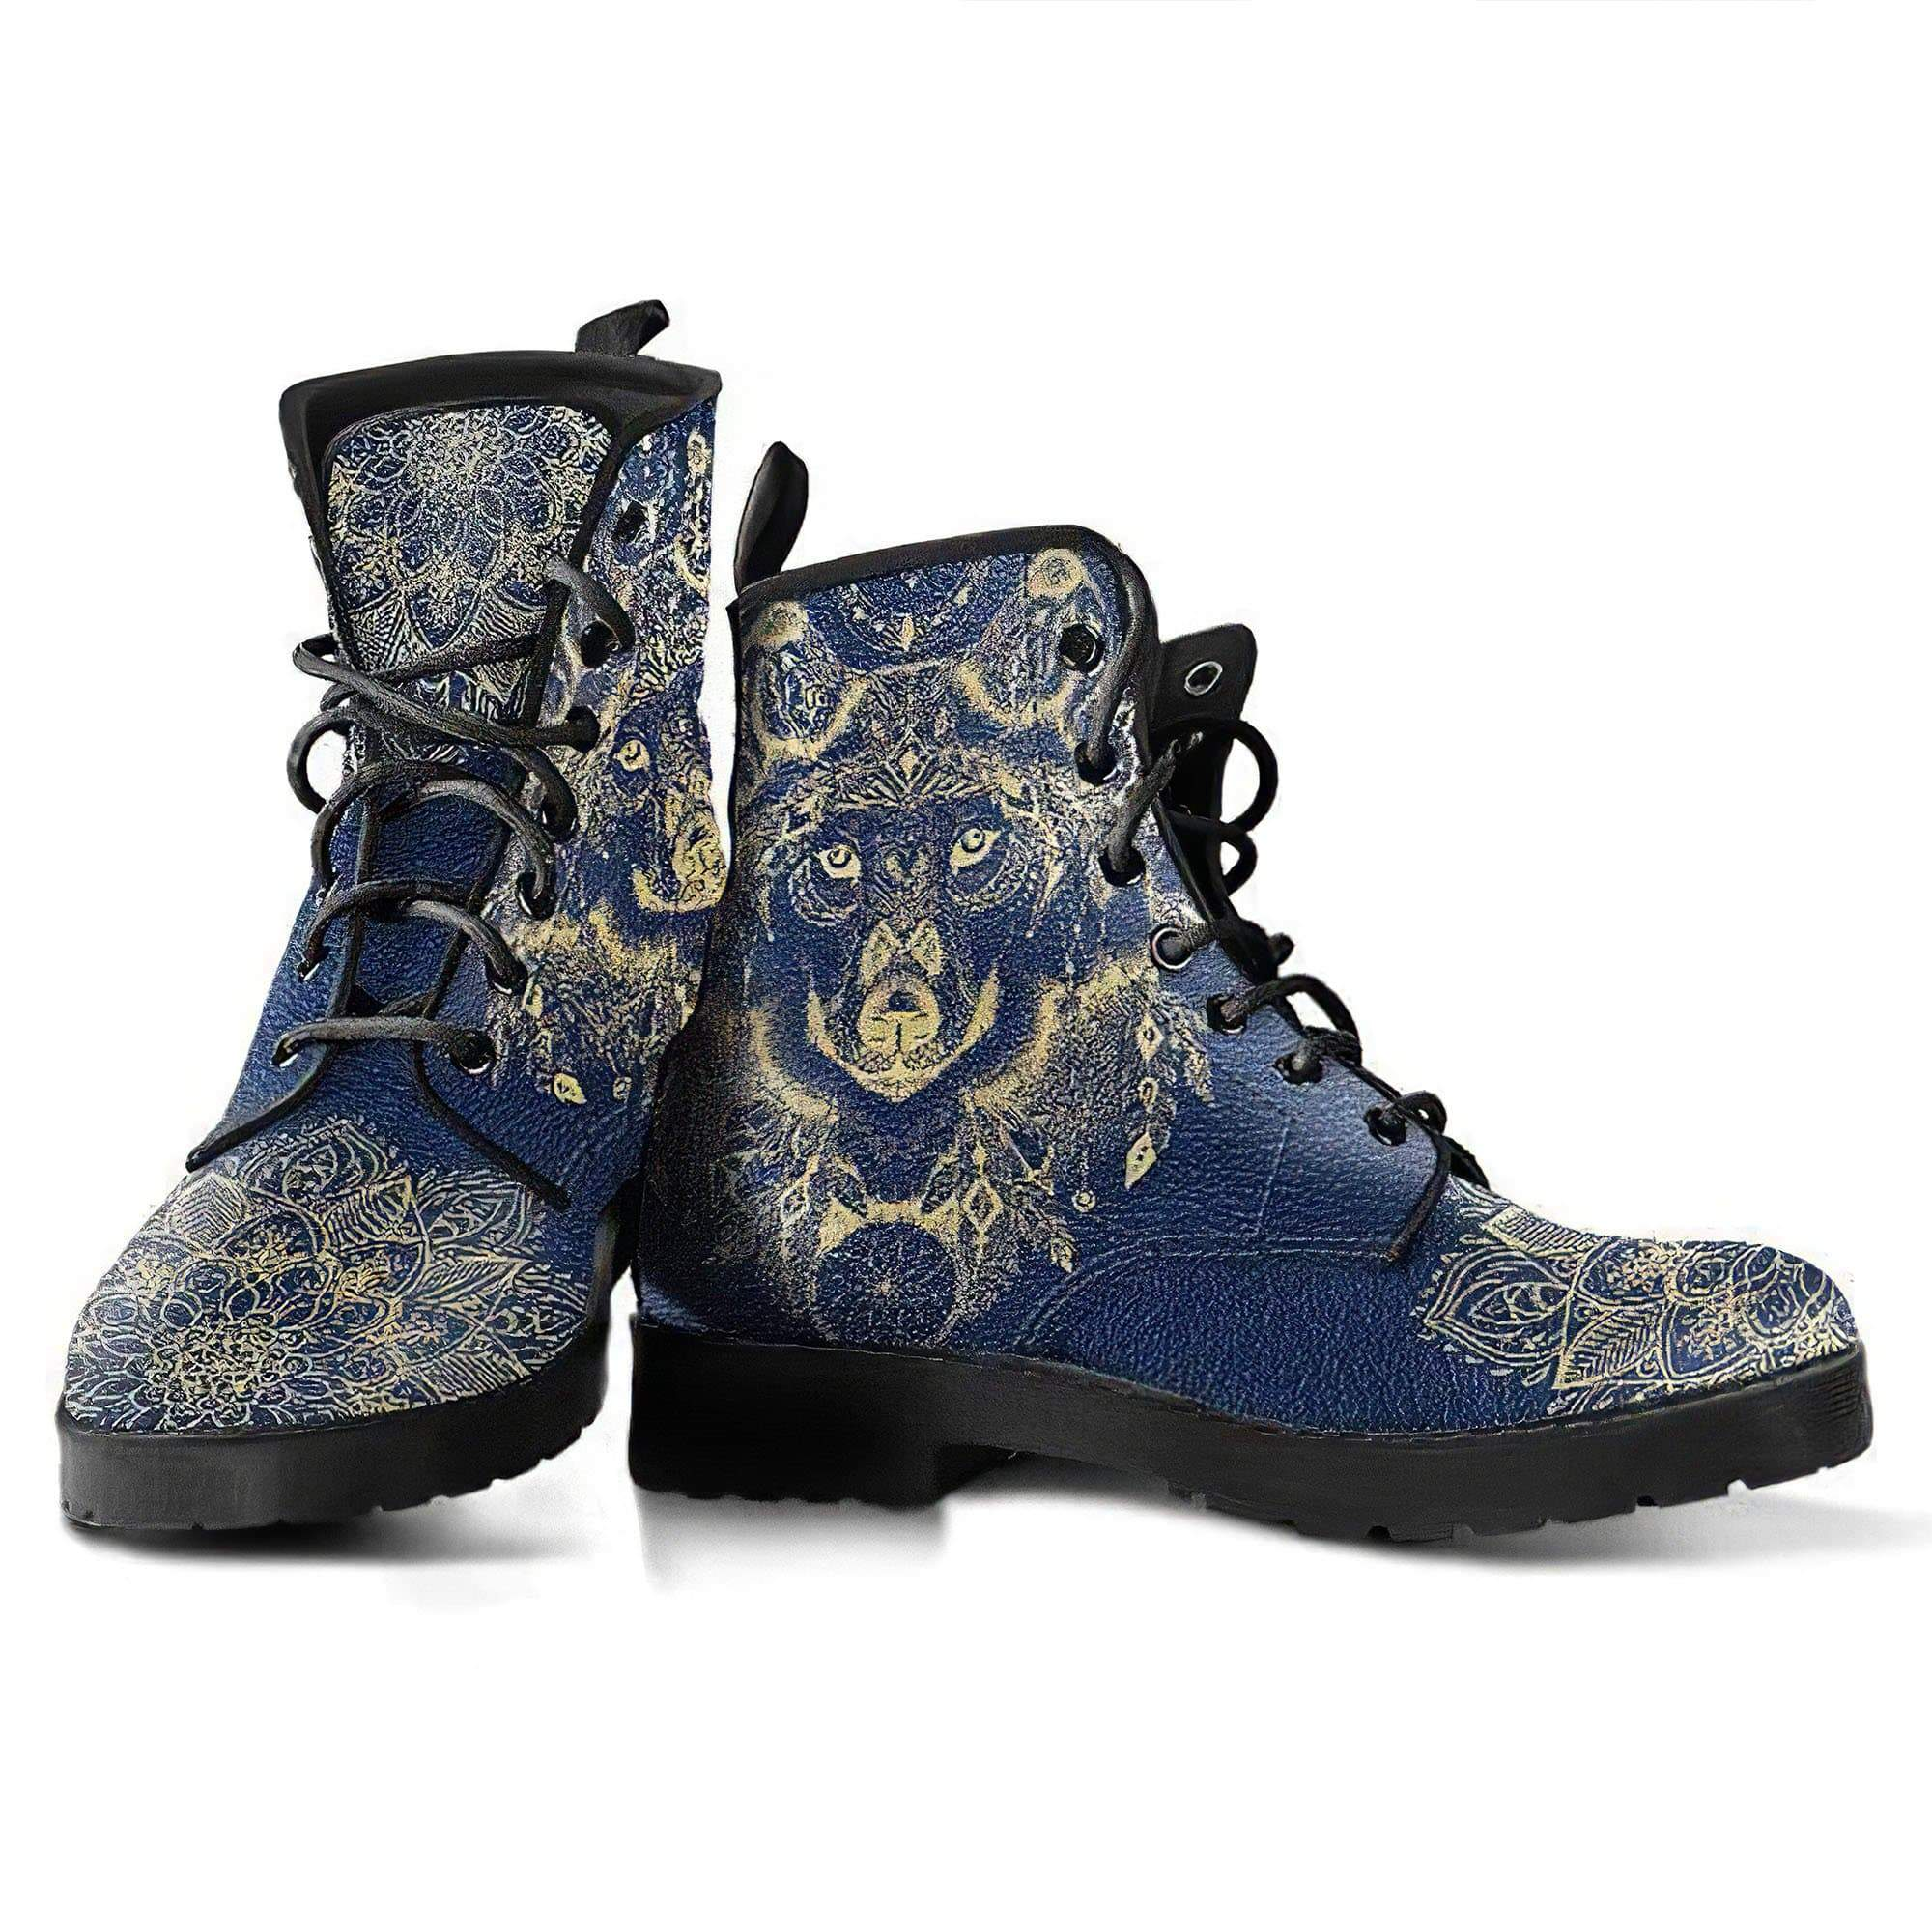 Wolf Mandala Handcrafted Boots Women's Leather Boots